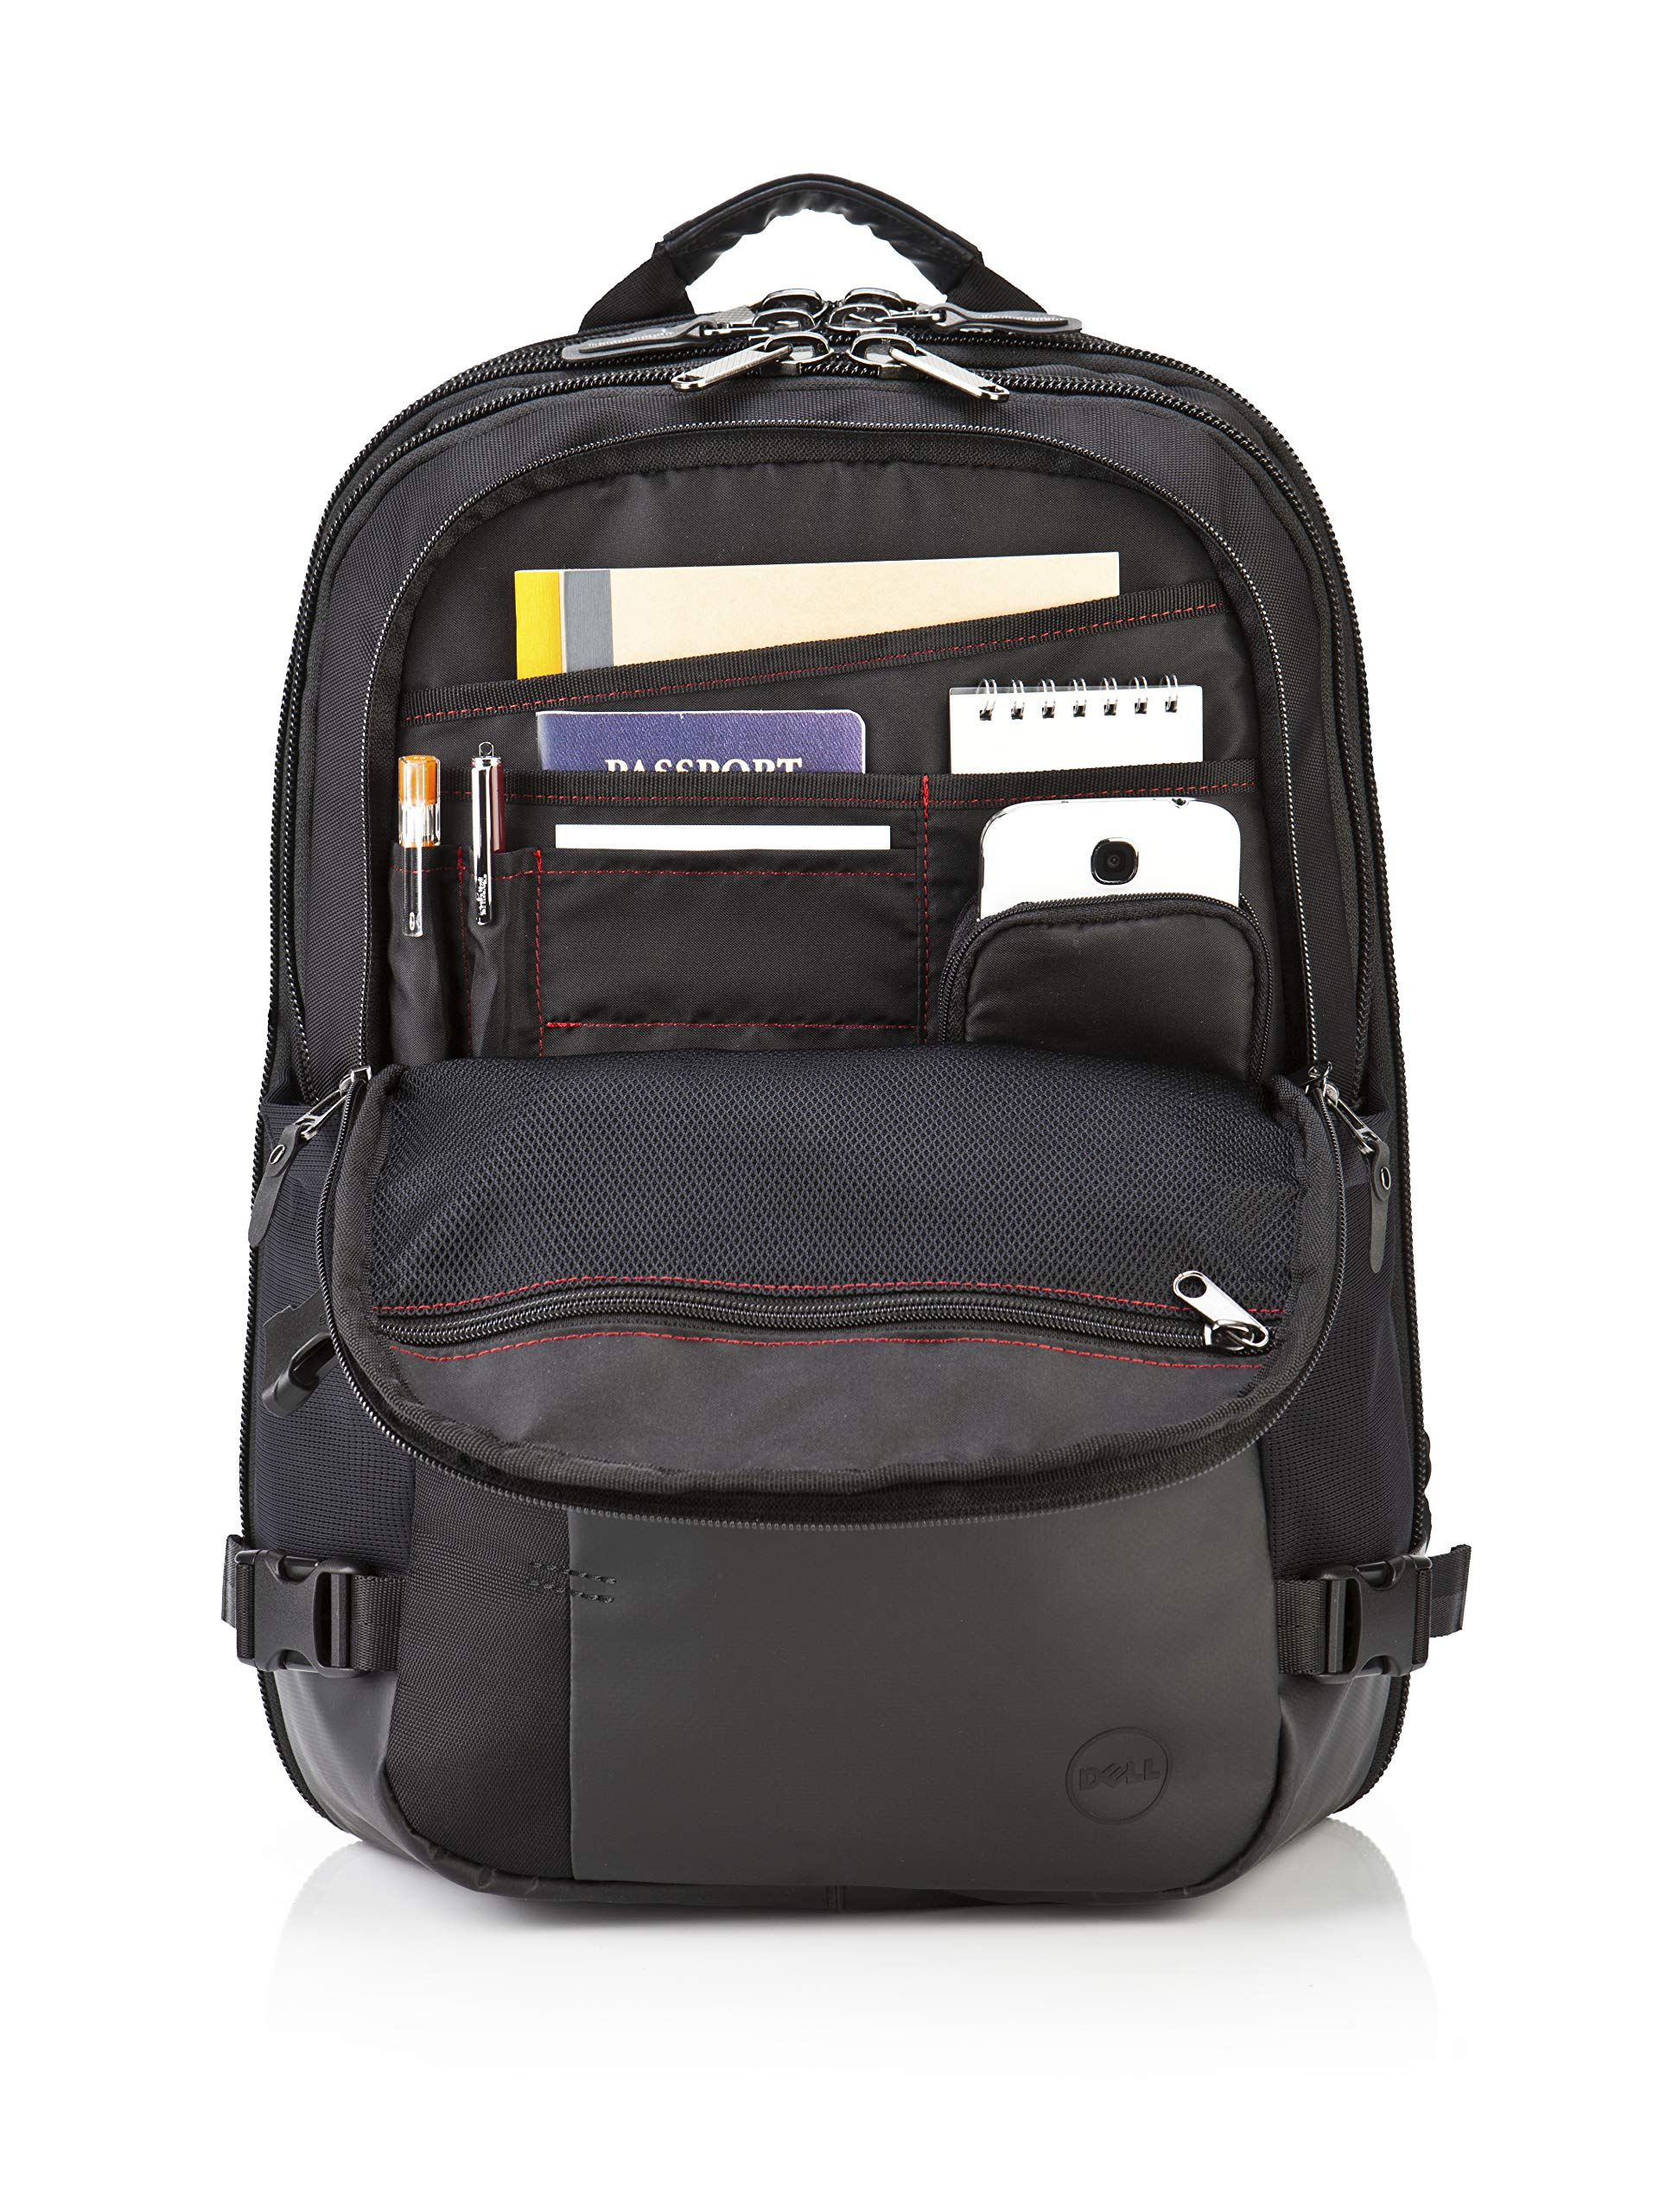 Dell Premier Backpack (1PD0H) by Dell (Image #4)